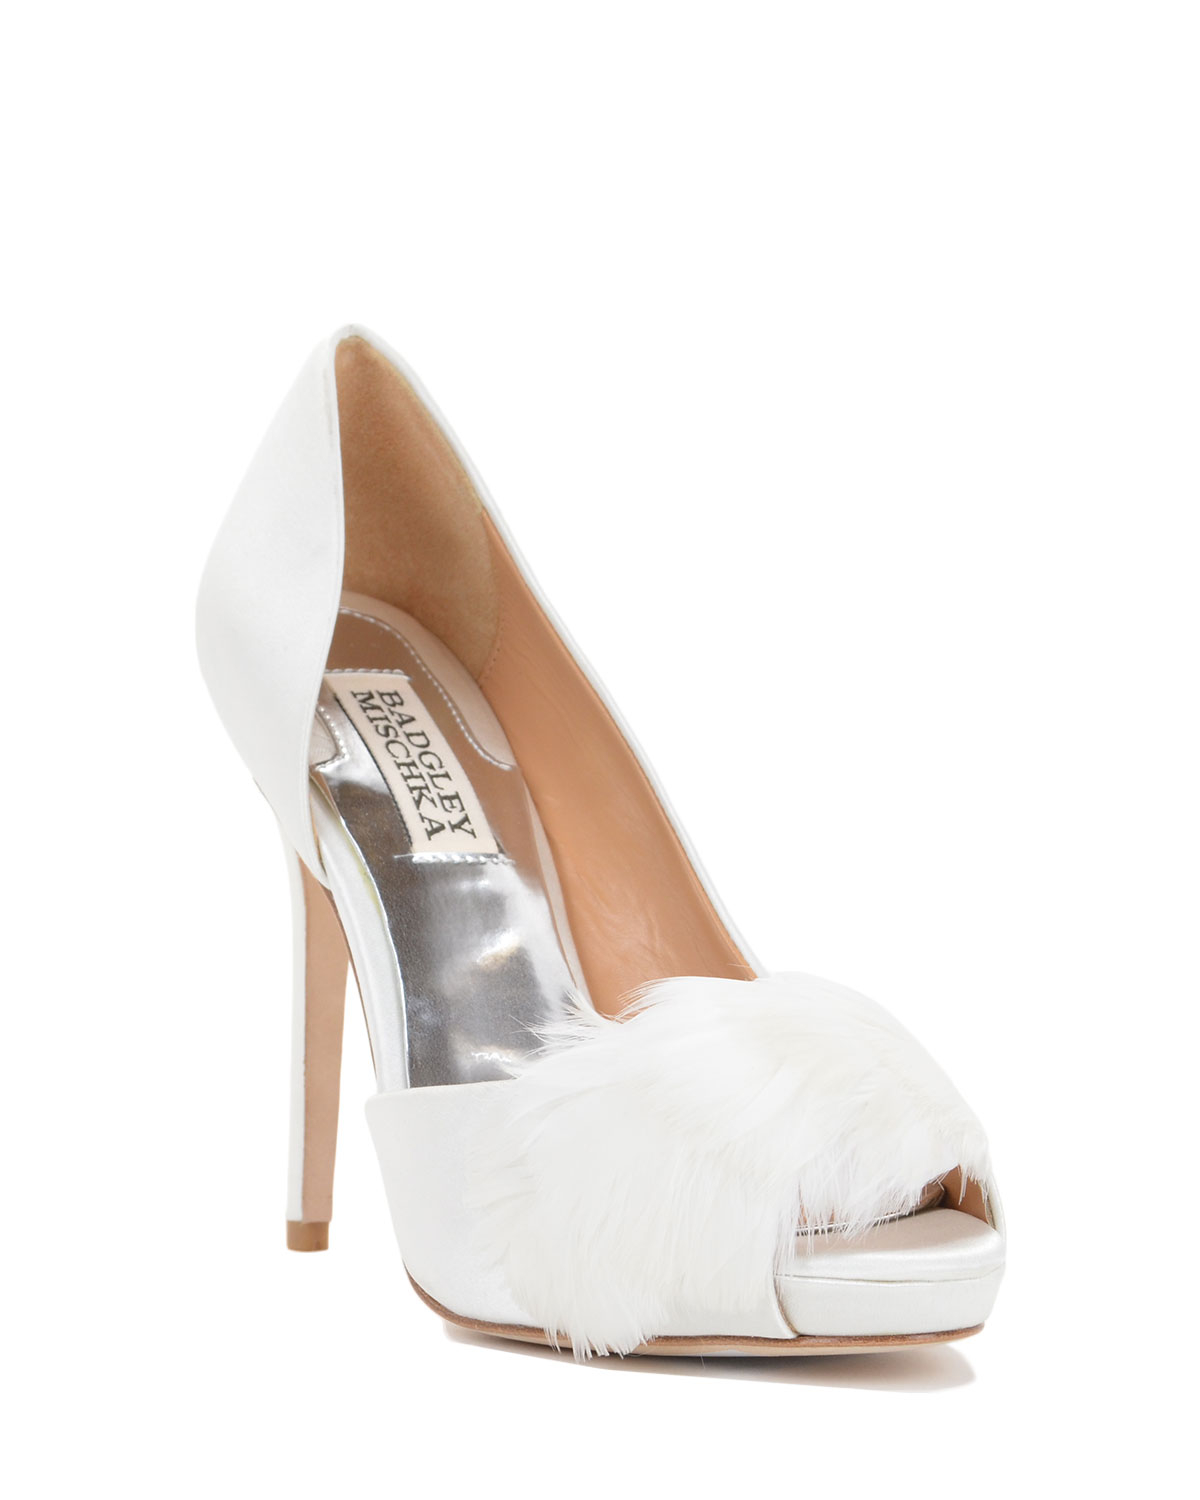 badgley mischka piper feather adorned evening shoe in